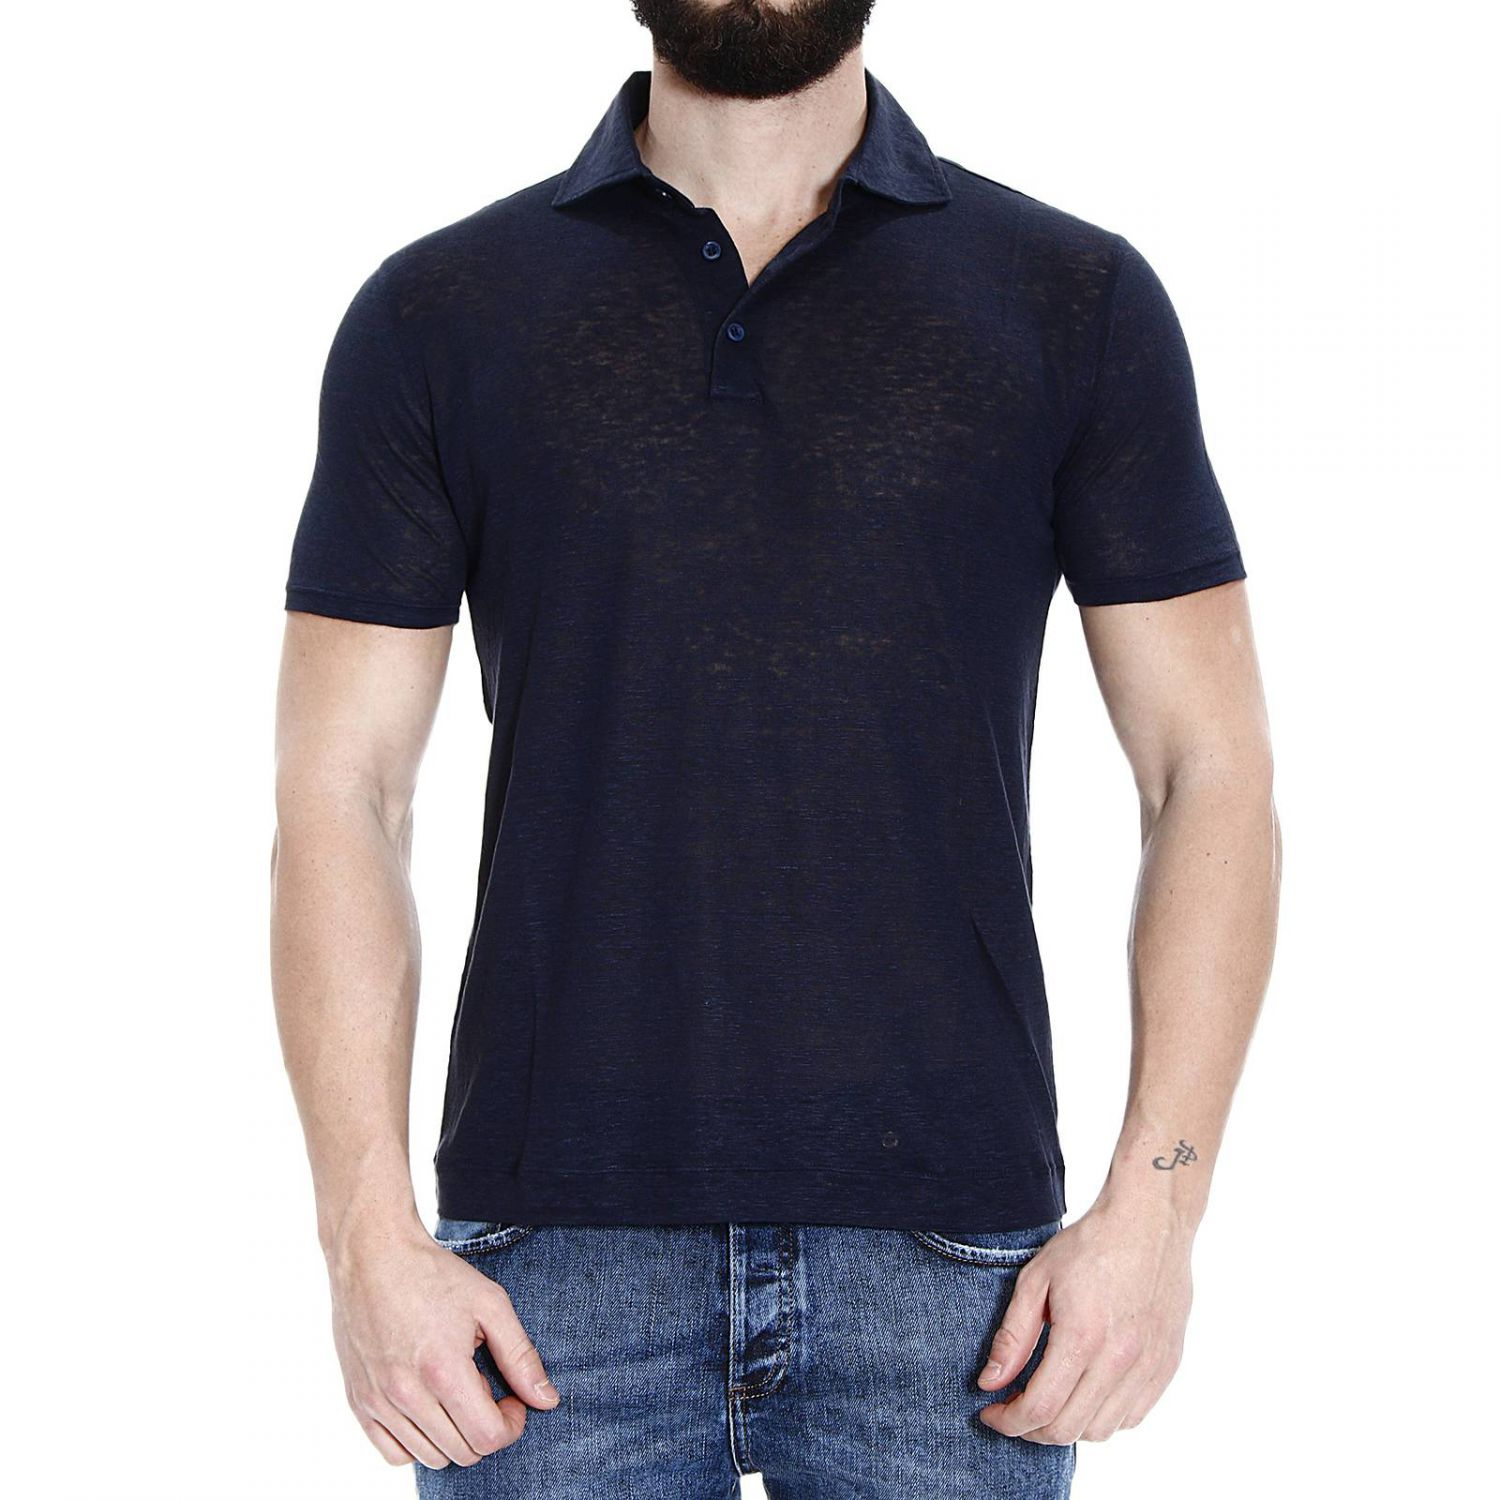 Cruciani t shirt polo half sleeve linen in blue for men lyst for Full sleeve polo t shirts